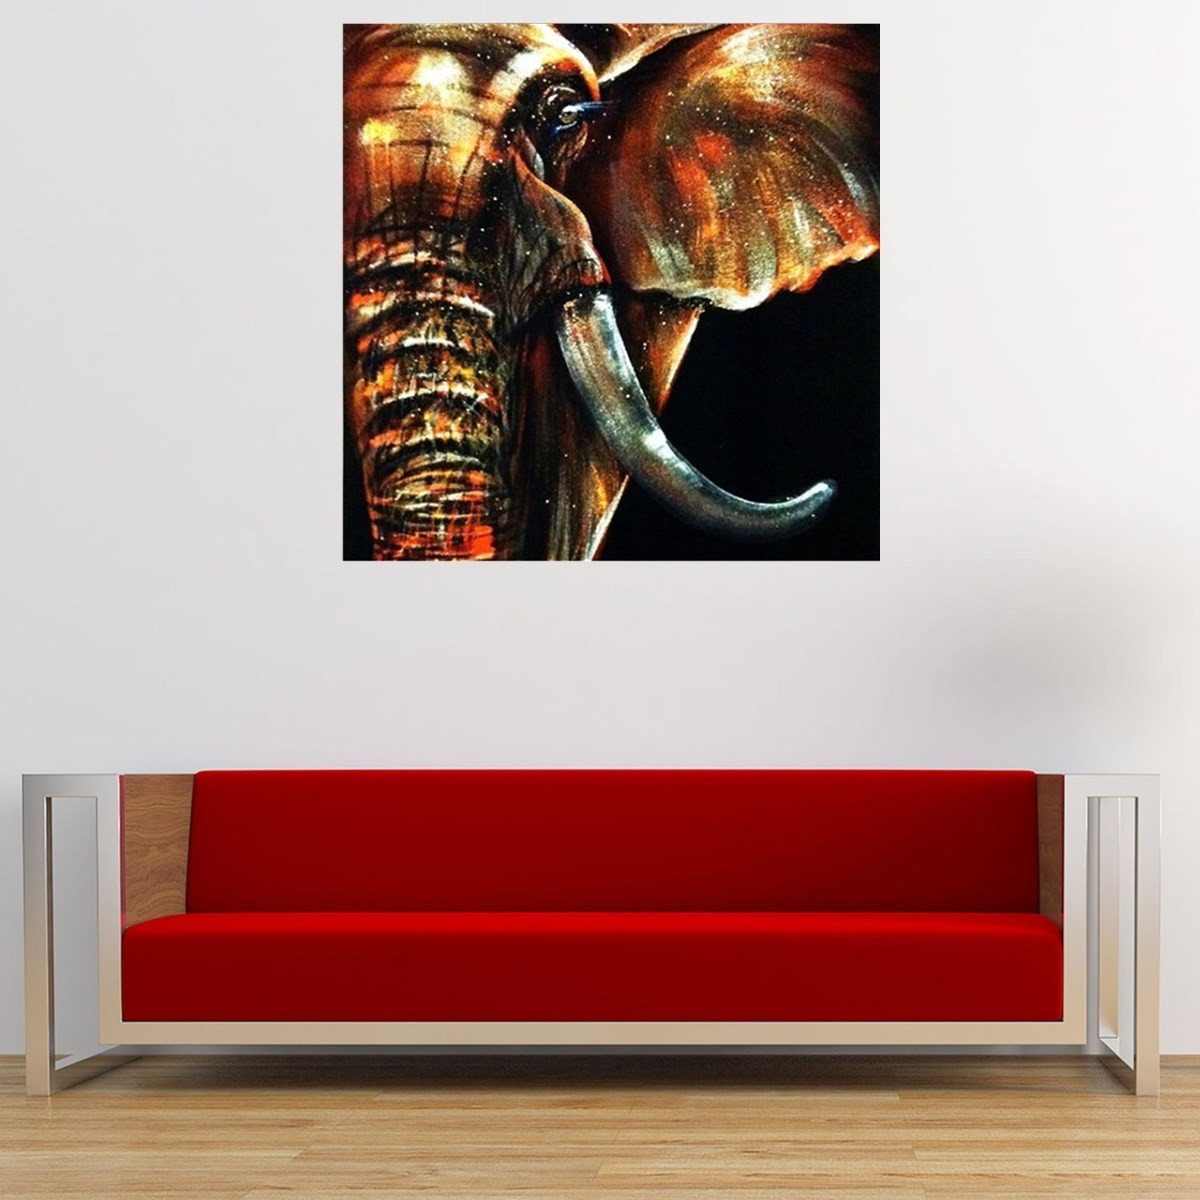 50X50Cm Modern Abstract Huge Elephant Wall Art Decor Oil Painting Inside Fashionable Abstract Elephant Wall Art (View 2 of 15)